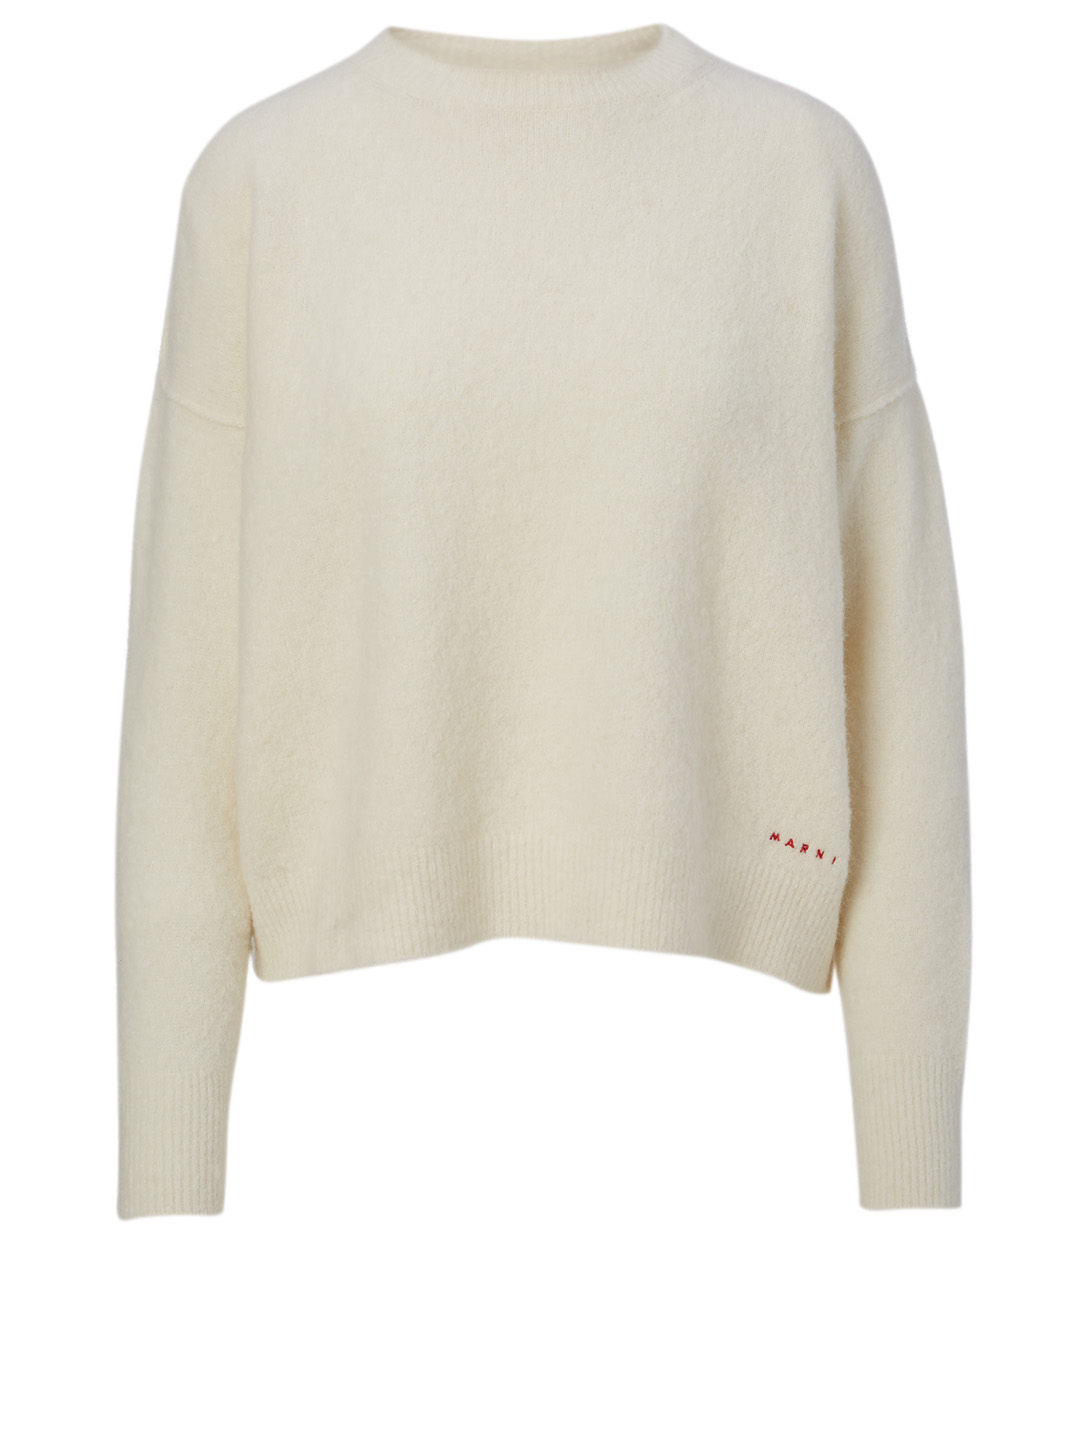 MARNI Wool Crewneck Sweater Women's White